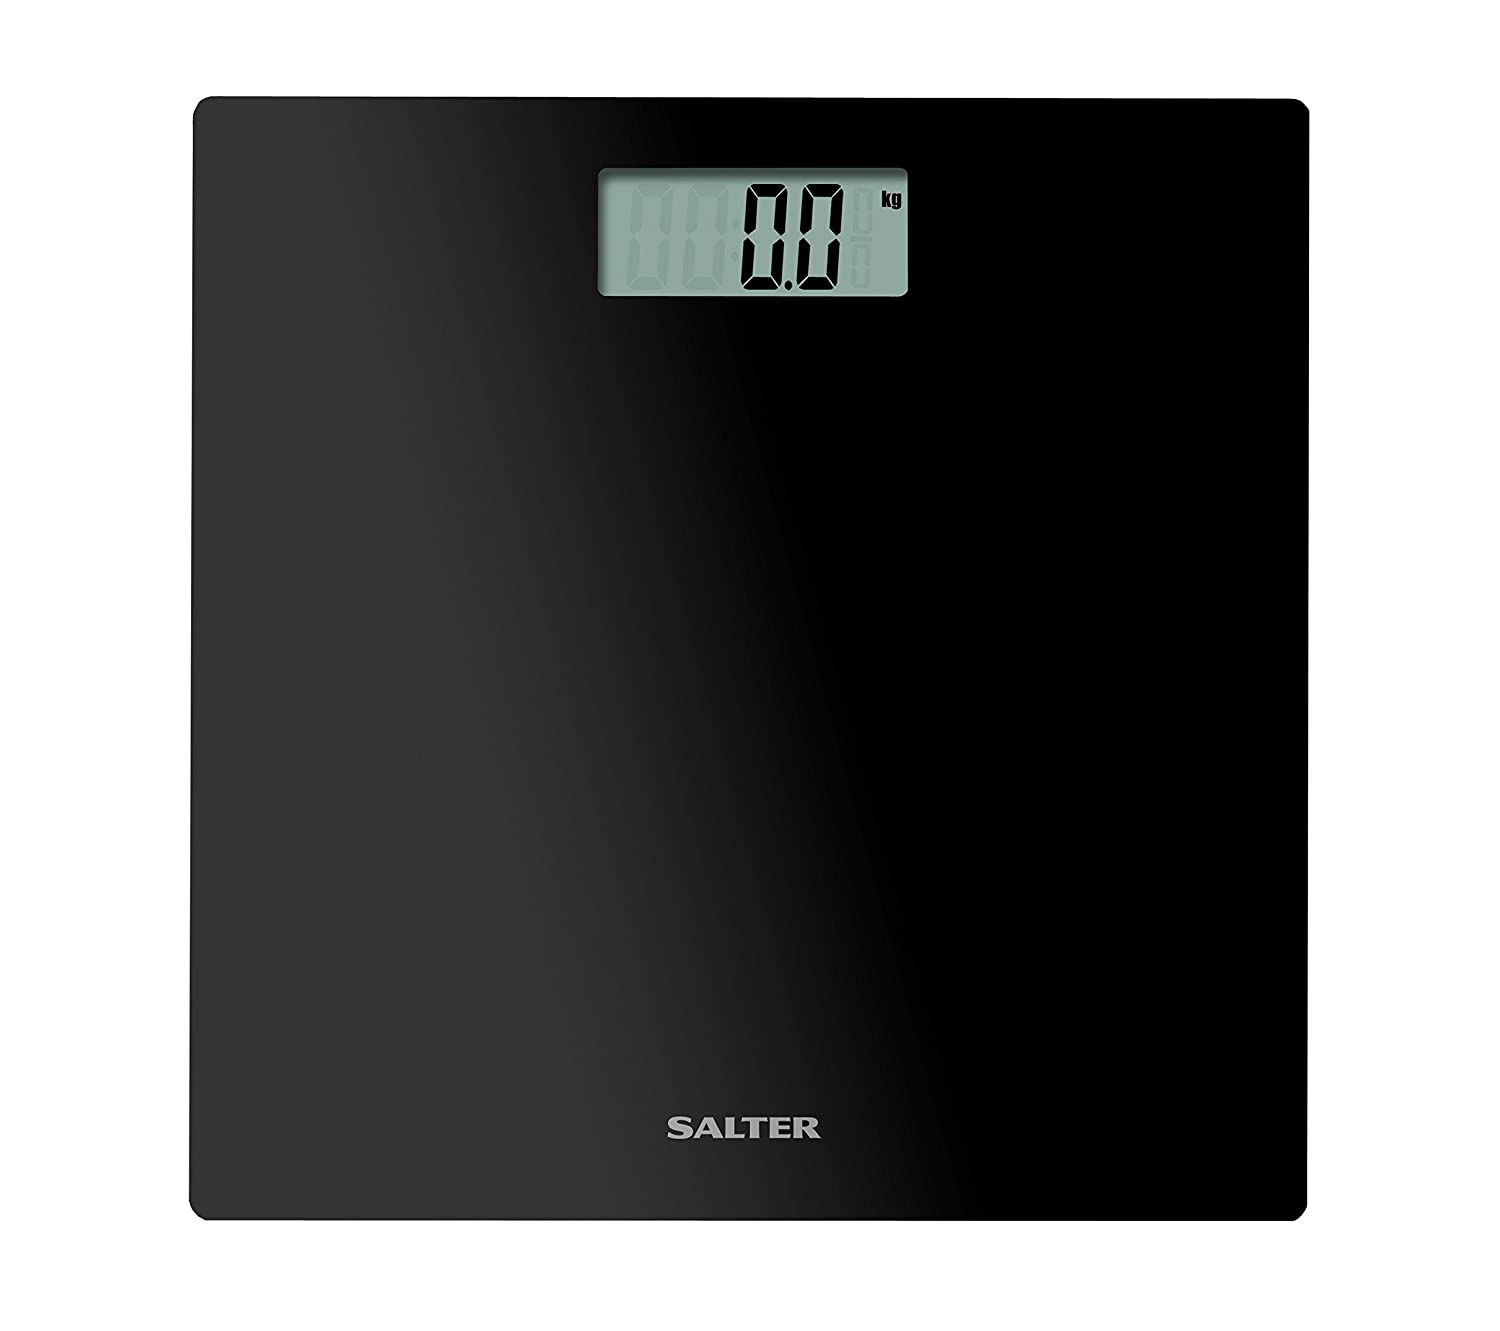 Salter 9069 BK3R Electronic Glass Bathroom Scale